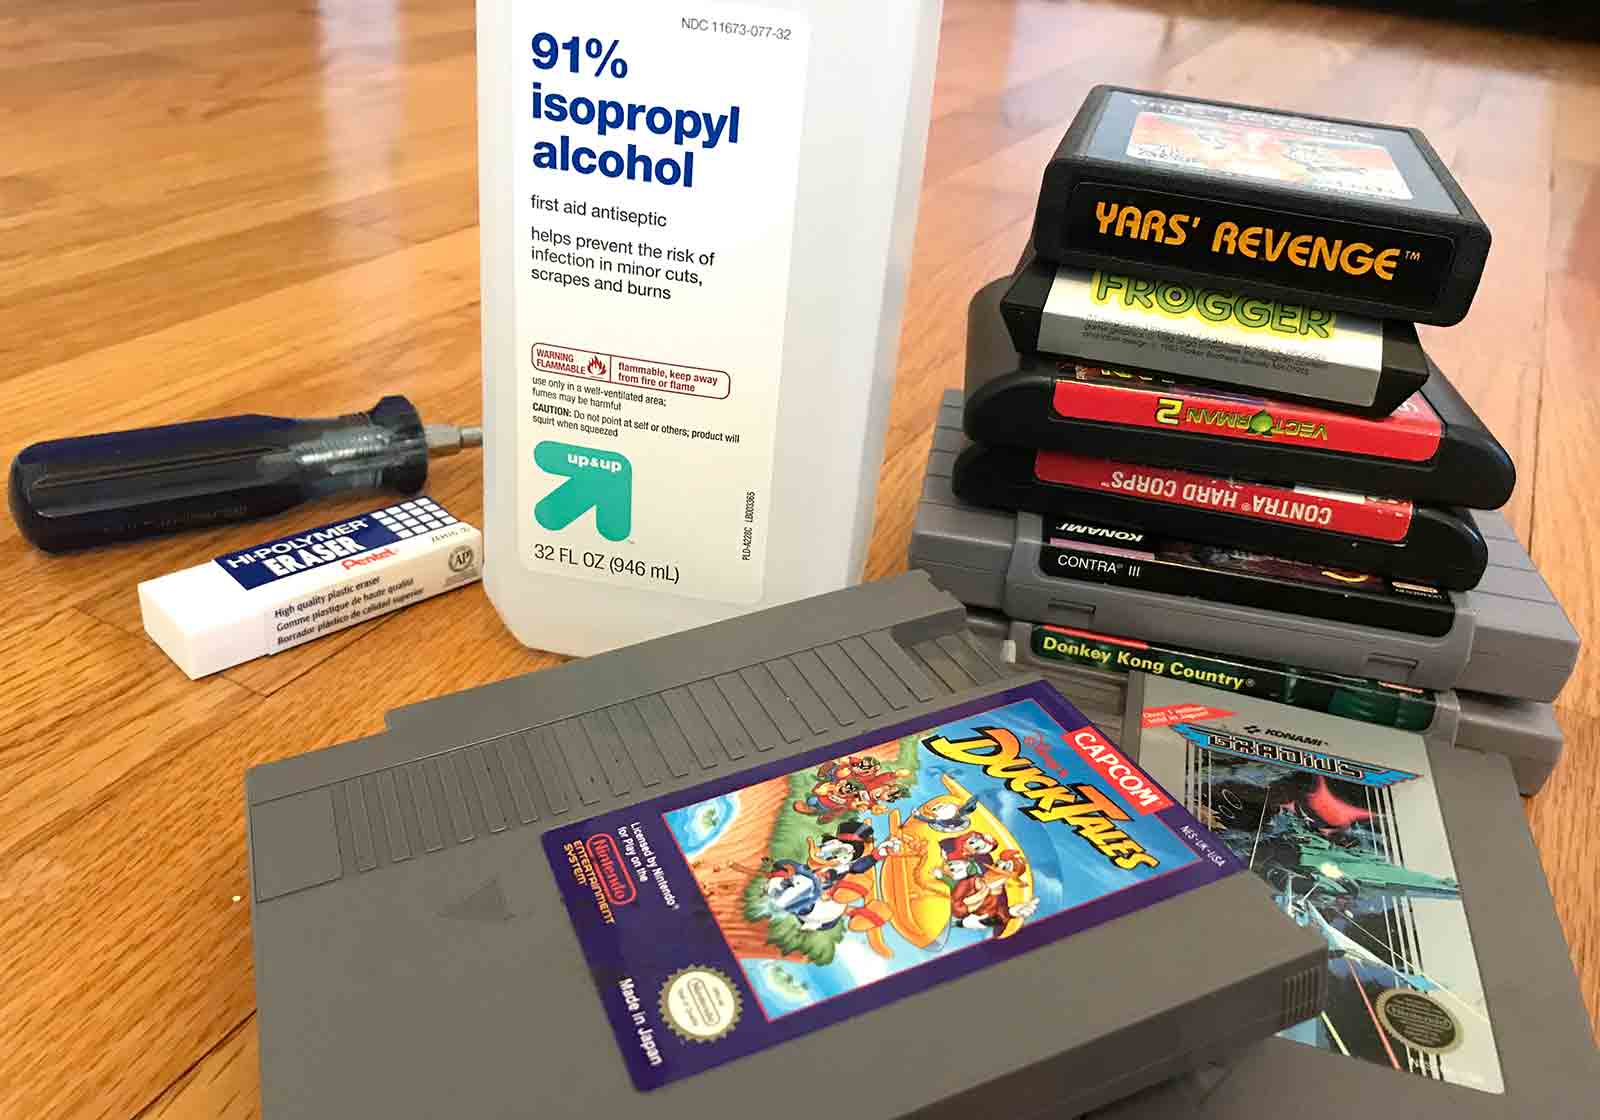 Game Cart Contact Cleaning Guide The Right Way Retrogaming With How Do I Choose Best Circuit Board Cleaner Picture This In Mind It Might Be Good To Set Aside Some Time Routine Batches Save You Over Long Run